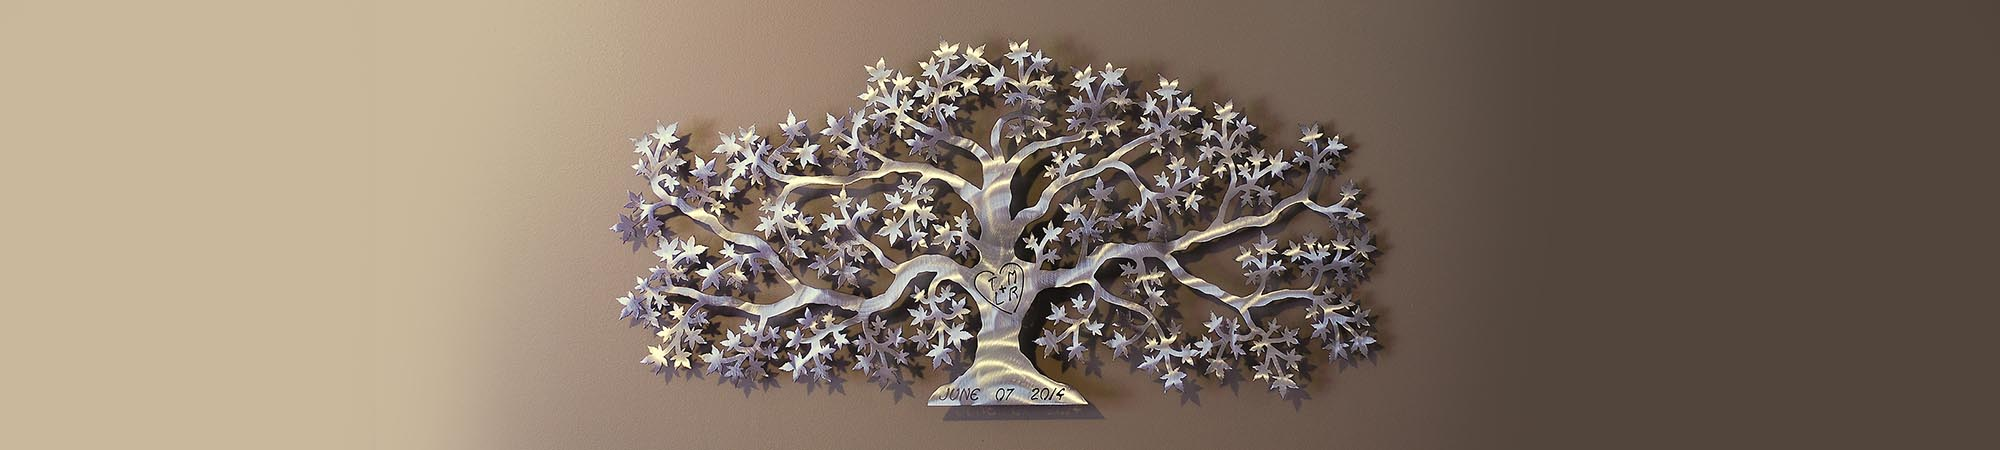 Anvil Island Design Tree of Love Wedding Gift